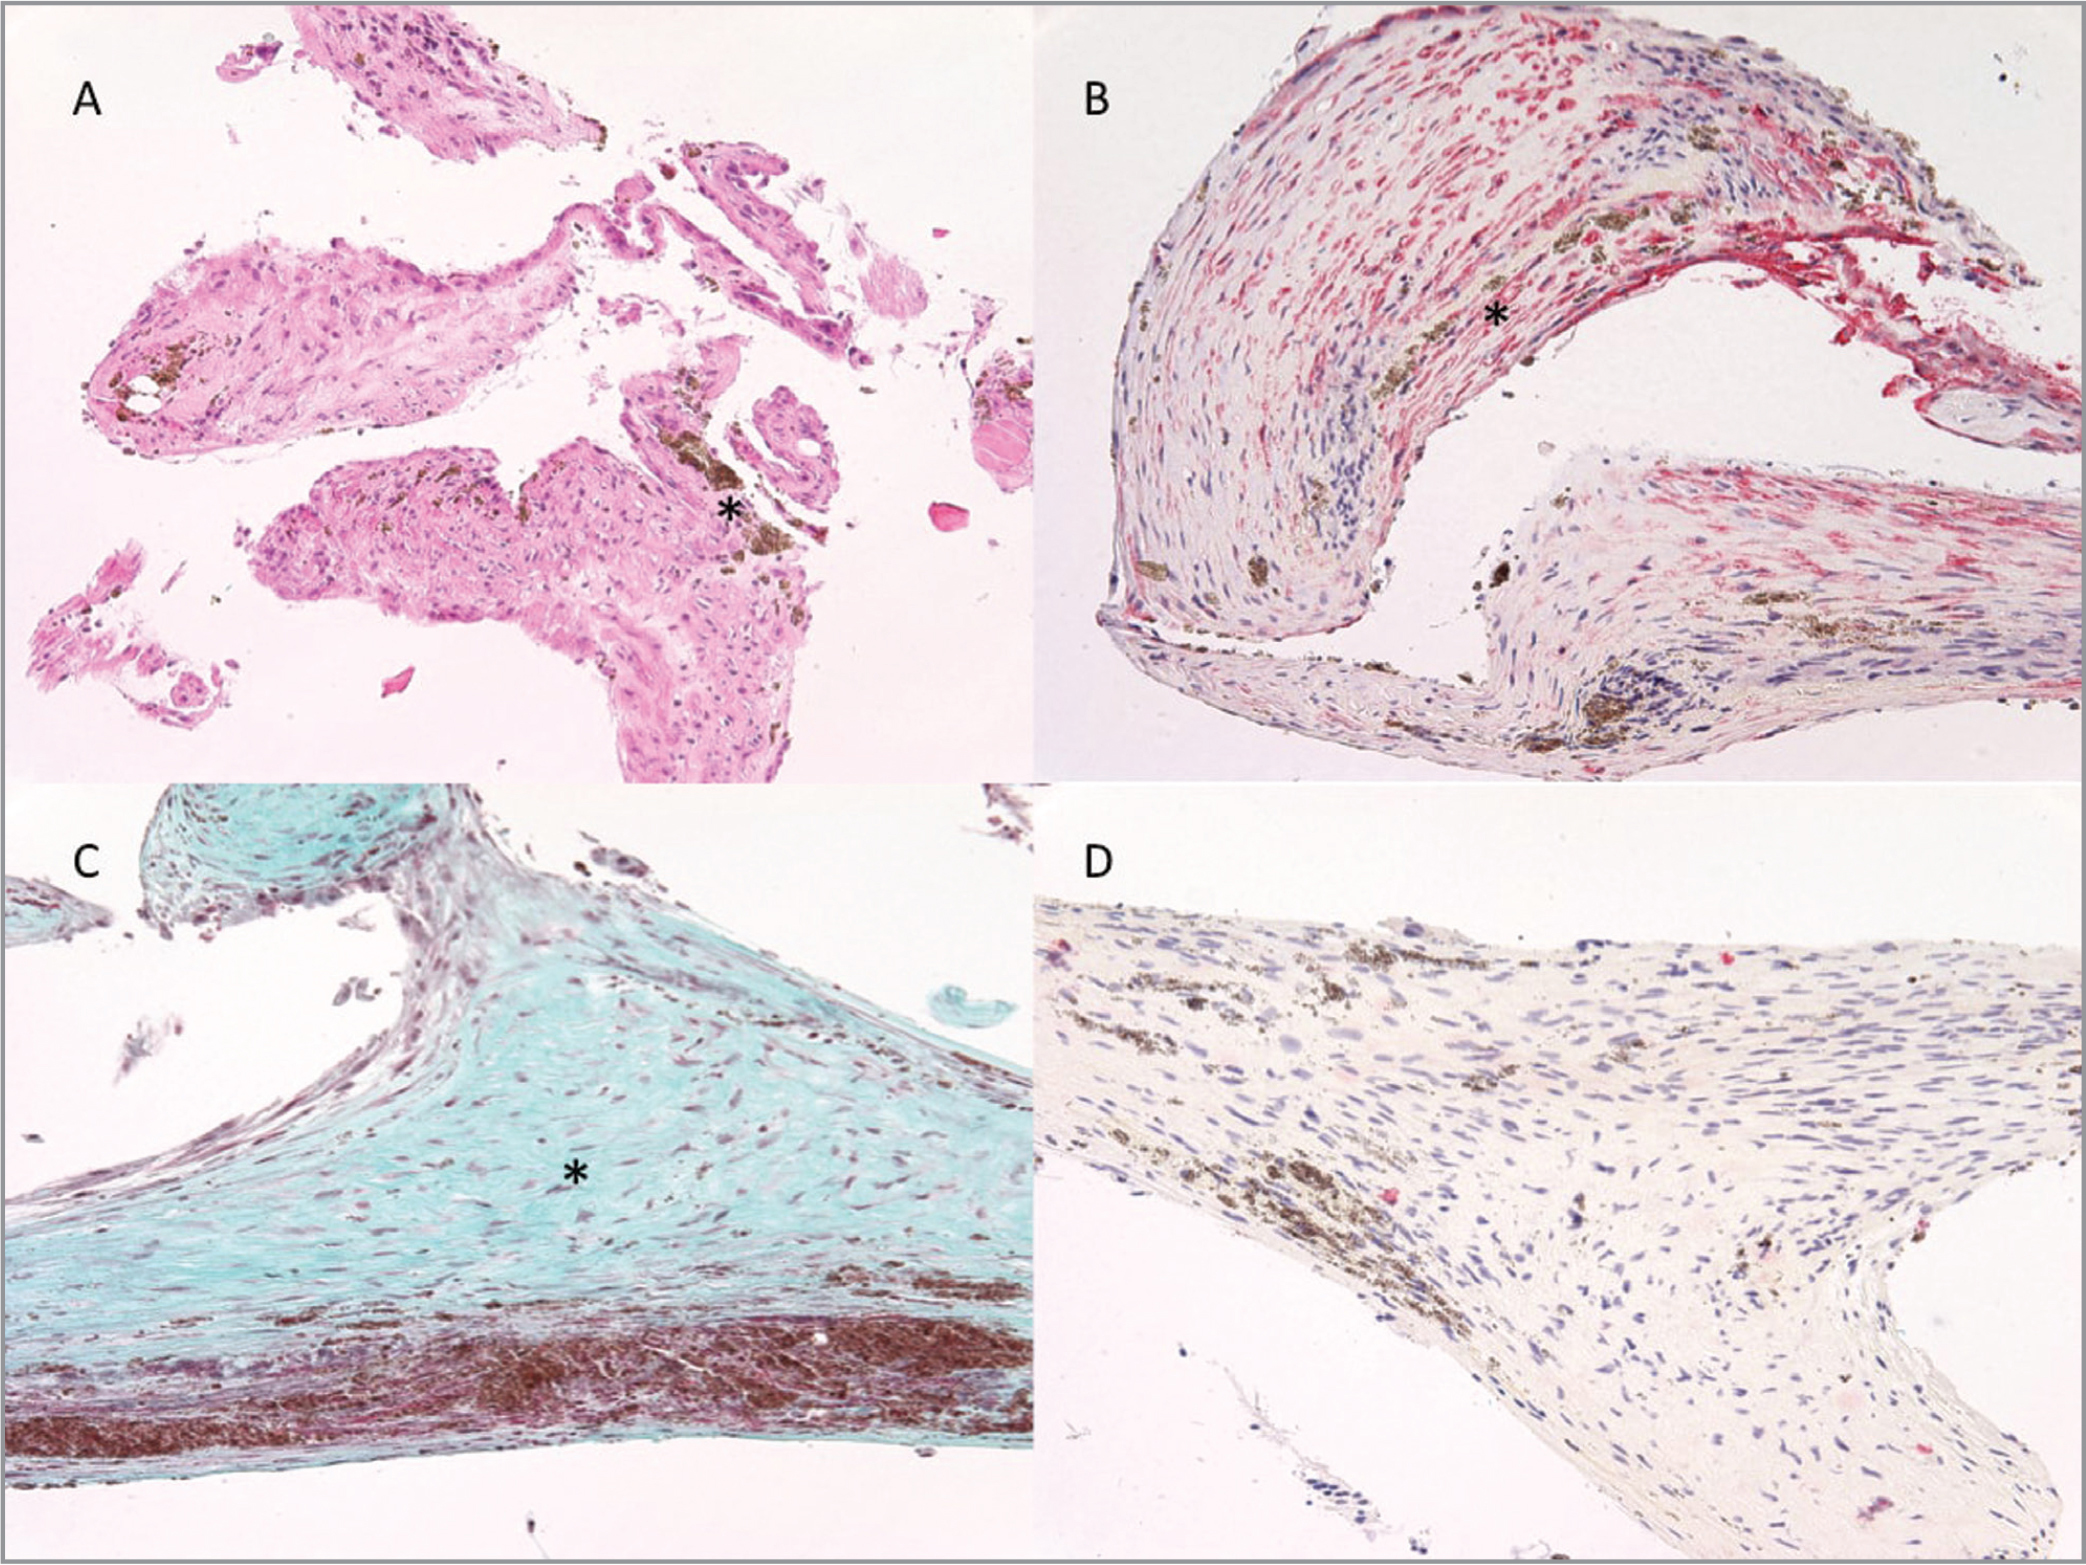 (A) Histology of subretinal band from Case 1 demonstrates a fibrovascular tissue that contained an admixture of pigment-containing cells (asterisk) and spindle-shaped cells with fragments of glial tissue (presumed neural retina). Foci of dropout spaces were present, consistent with silicone oil (hematoxylin-eosin, original magnification ×200). (B) The membrane stained strongly positive with Smooth Muscle Actin immunostain (Leica Biosystems, Wetzlar, Germany), colored red and marked with an asterisk (original magnification ×200). (C) The specimen was positive for collagen deposition with Masson's trichrome, colored green and marked with an asterisk (original magnification ×200). (D) CD34 immunostain (Leica Biosystems, Wetzlar, Germany) was negative (original magnification ×200).